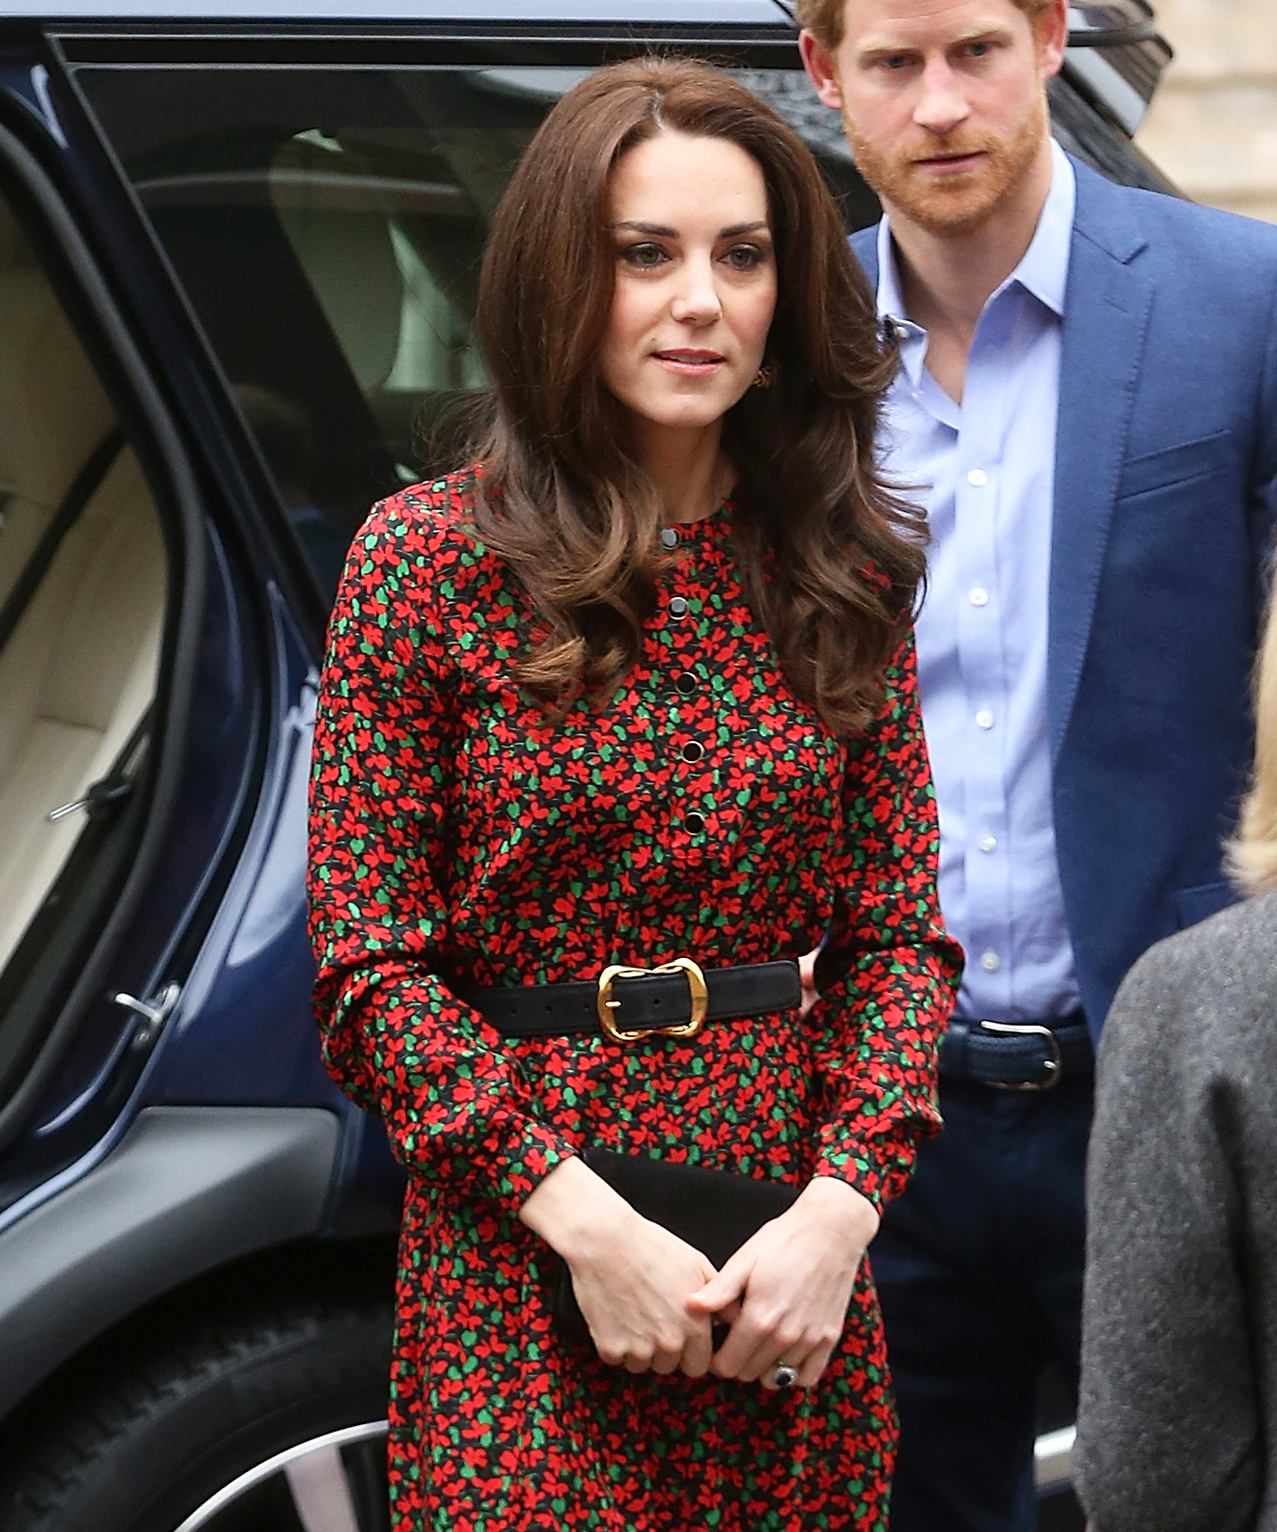 Shop These 6 Pieces from Kate Middleton's Closet